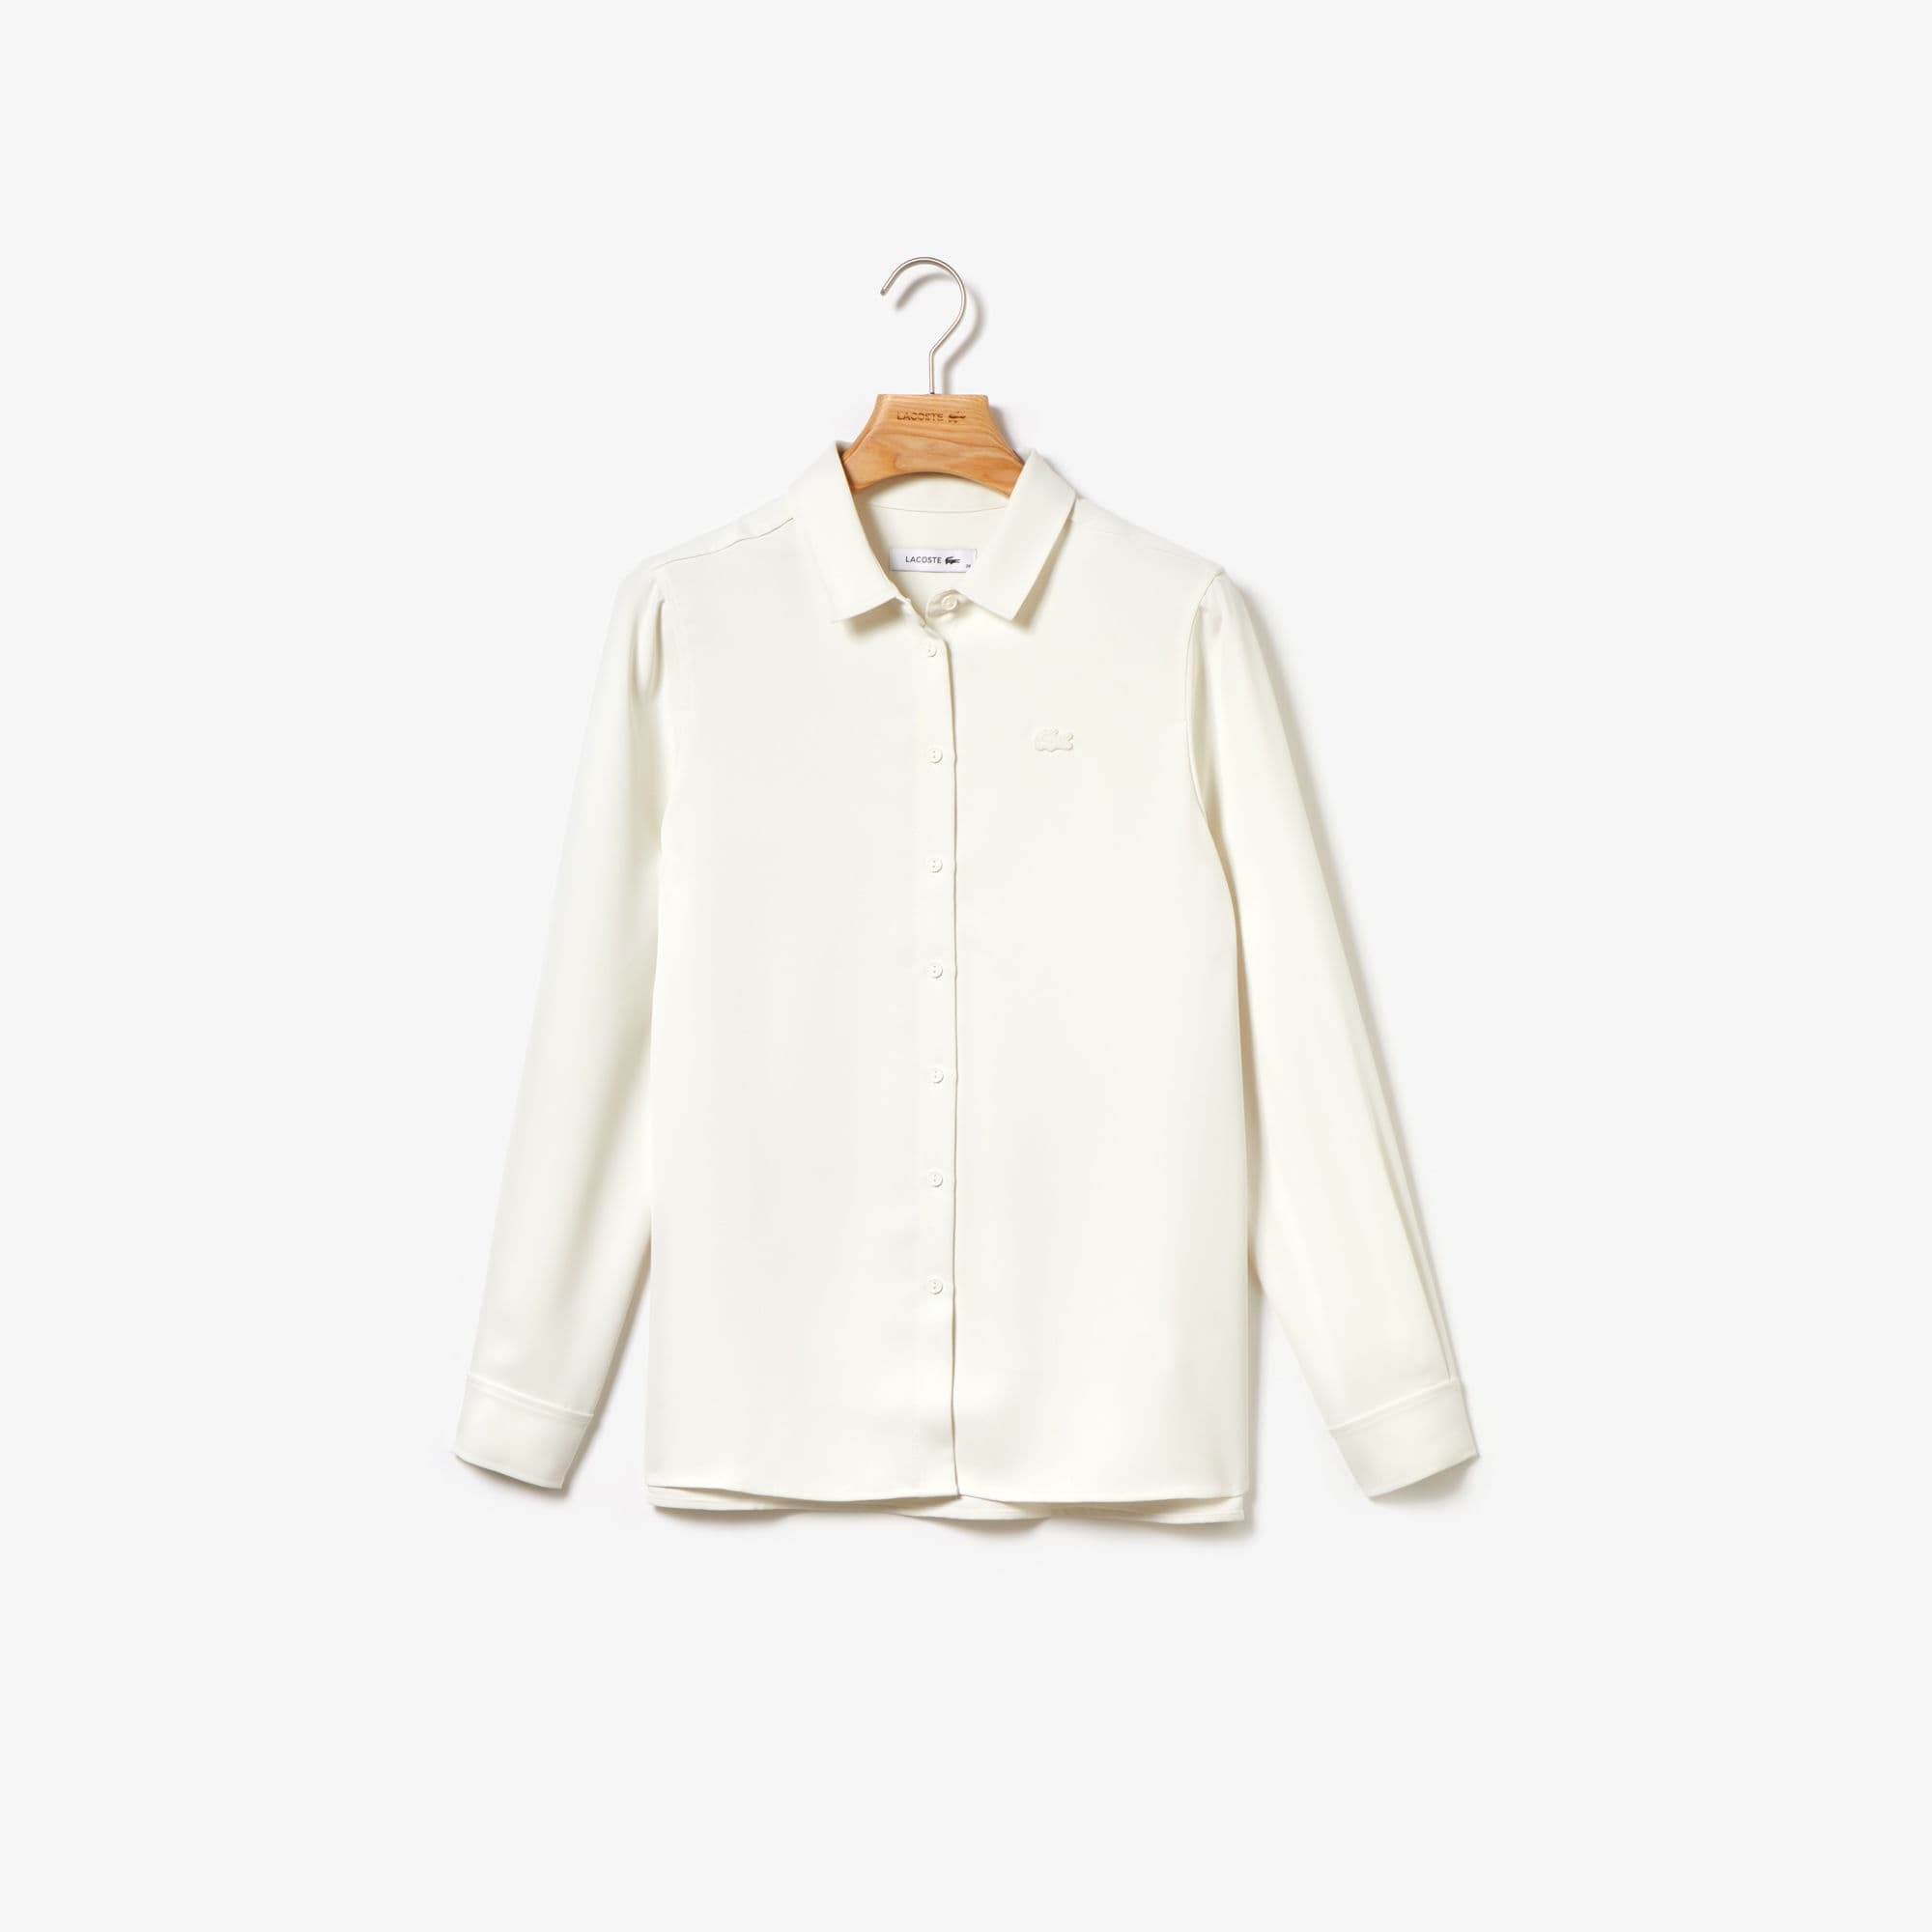 LACOSTE | Lacoste Lacoste - Womens Long Sleeves Woven Shirt | Goxip